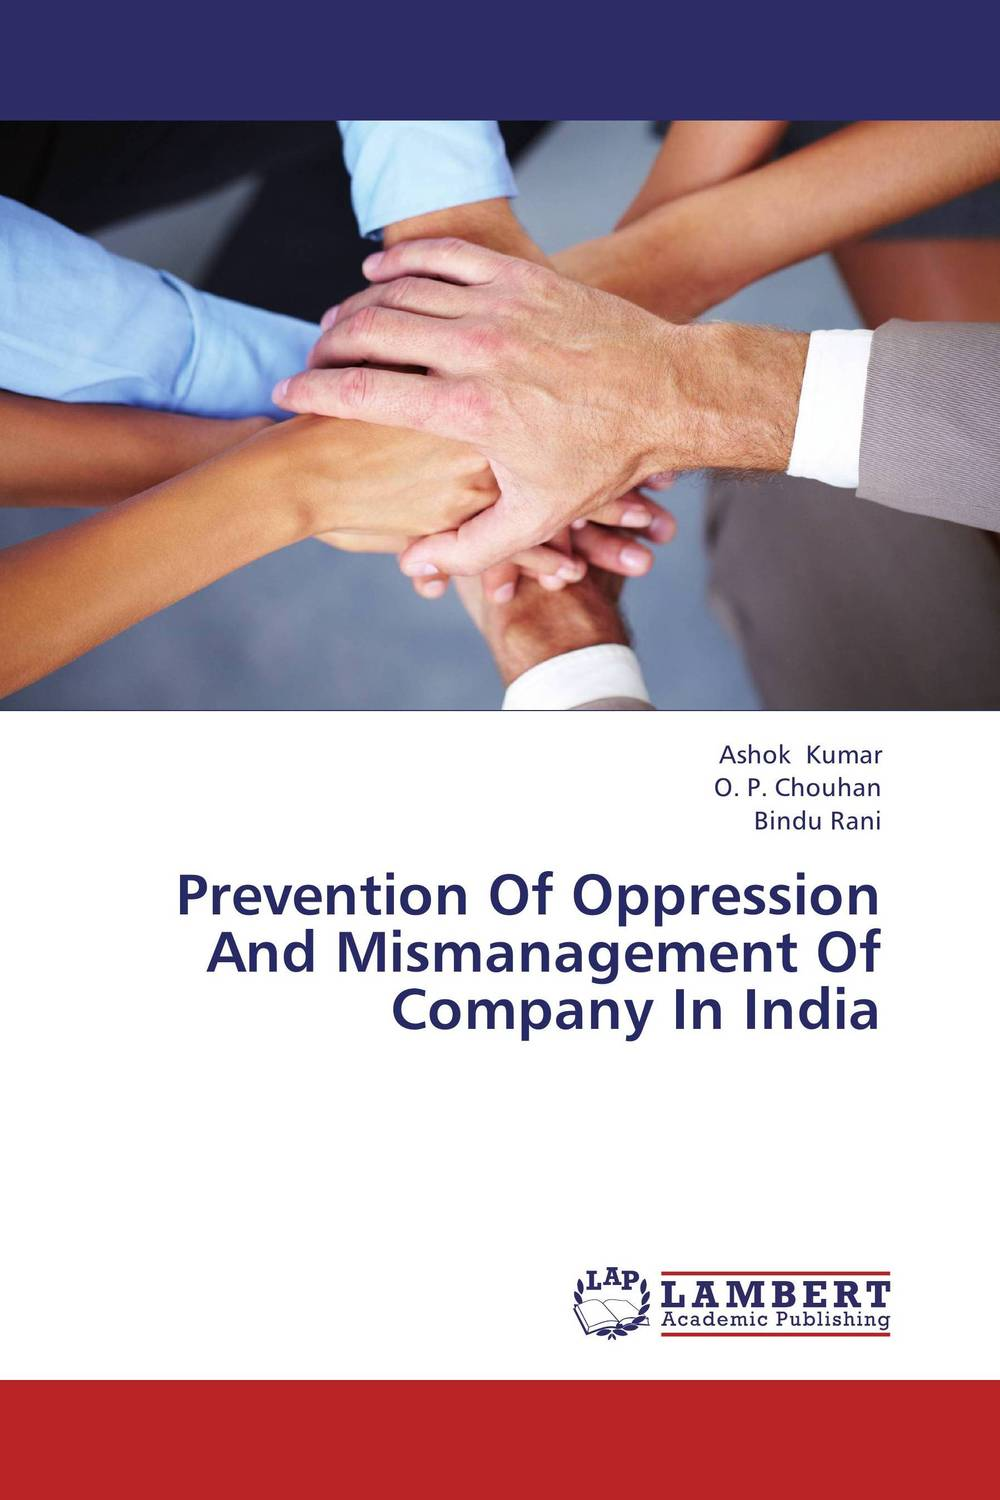 Prevention Of Oppression And Mismanagement Of Company In India corporate governance and firm value